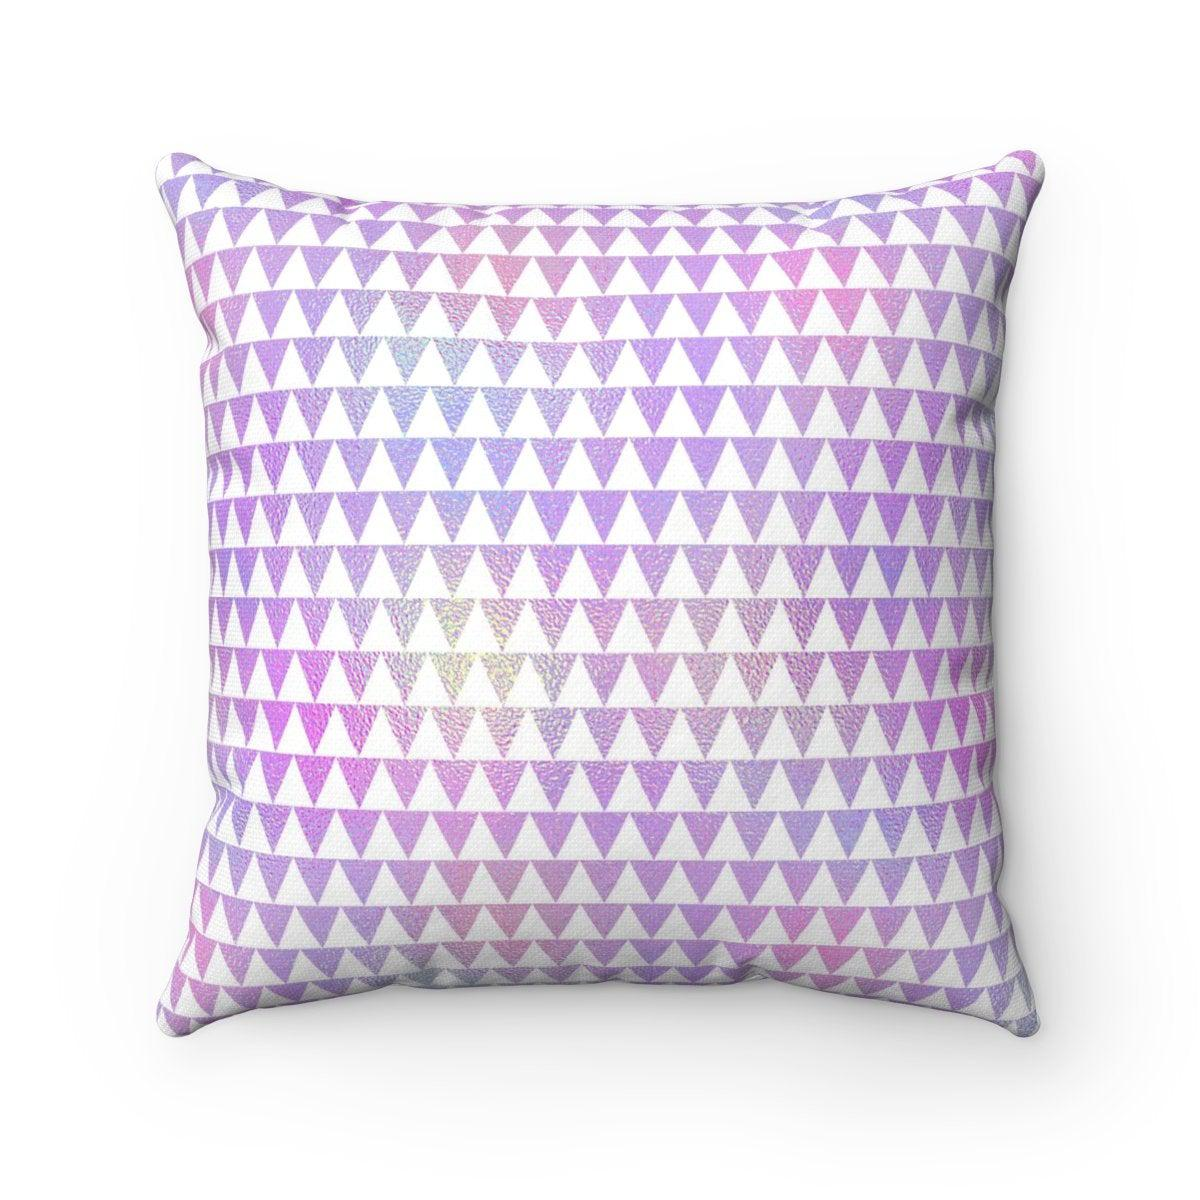 Minime Hologram Triangle geometric decorative cushion cover-Home Decor - Decorative Accents - Pillows & Throws - Decorative Pillows-Maison d'Elite-14x14-Très Elite